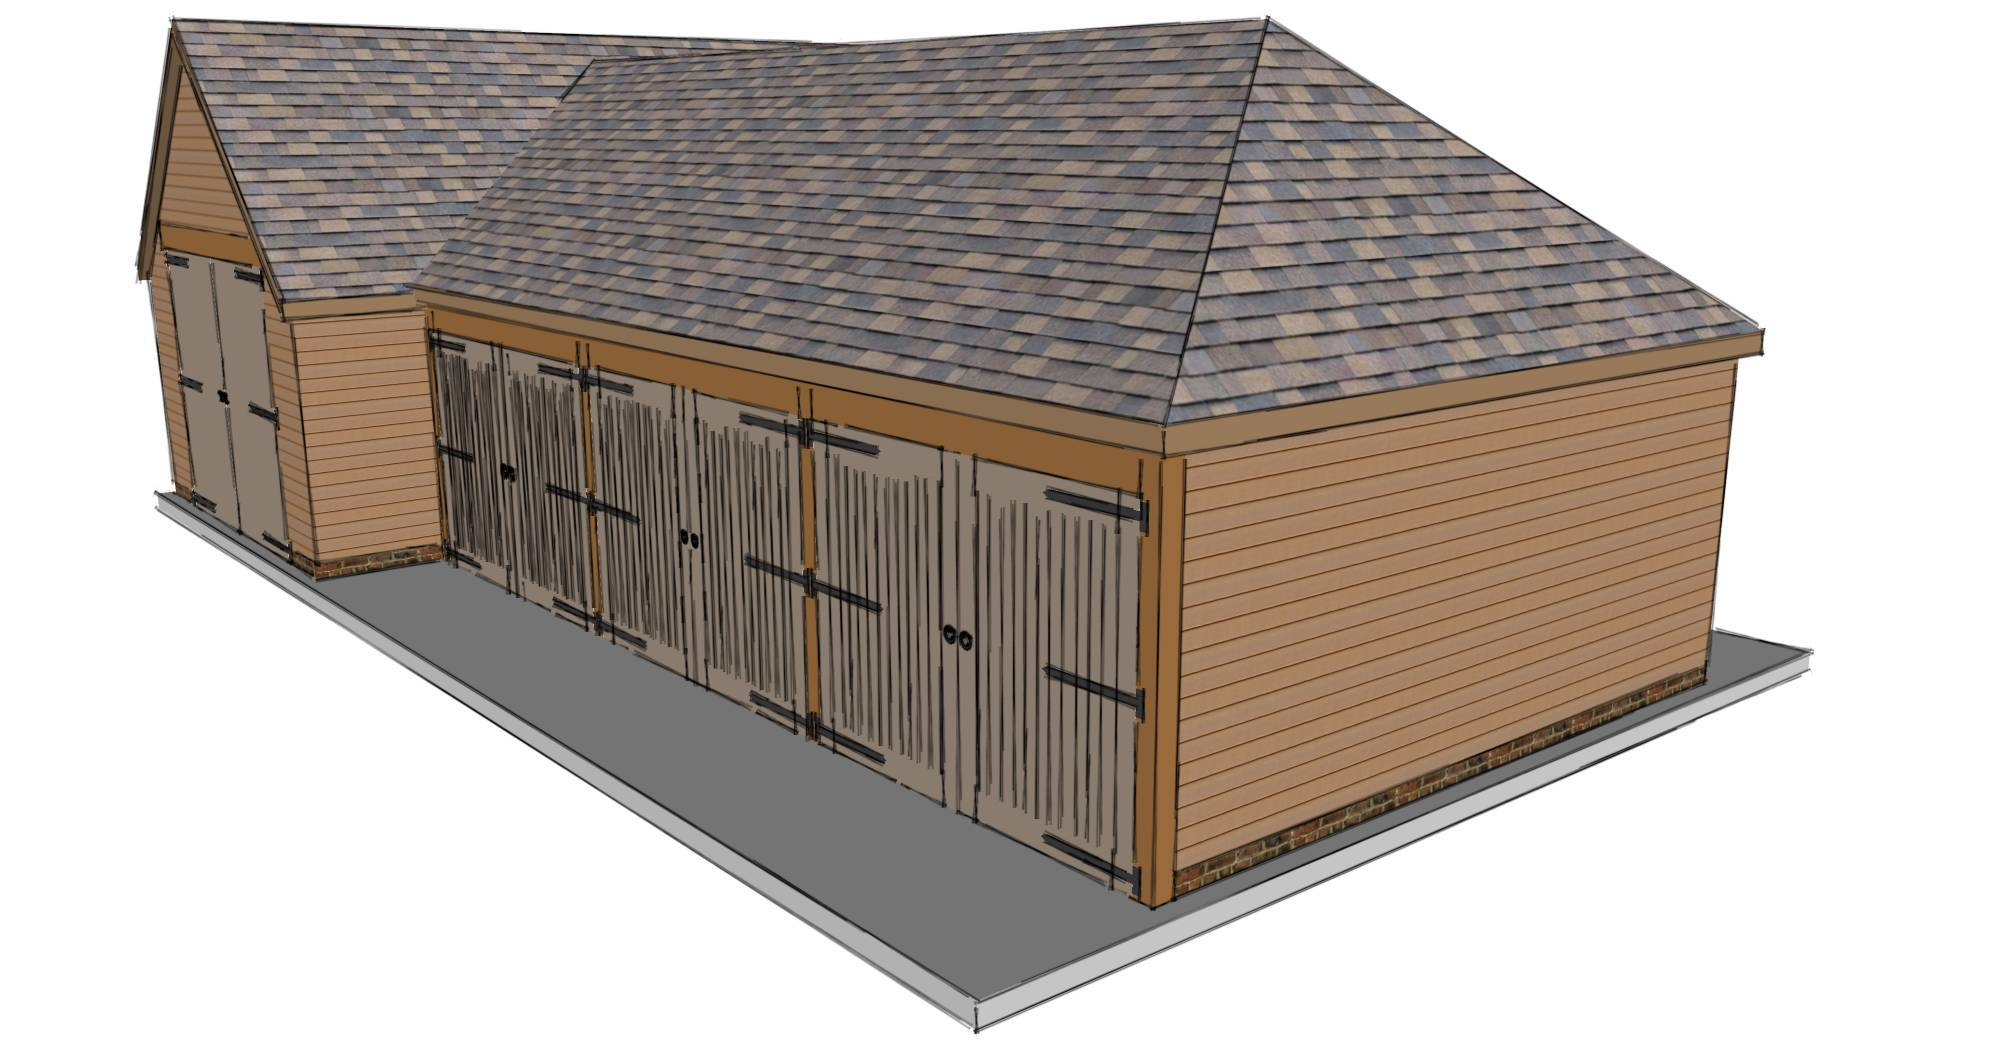 t shaped garage scheme the stable company 1